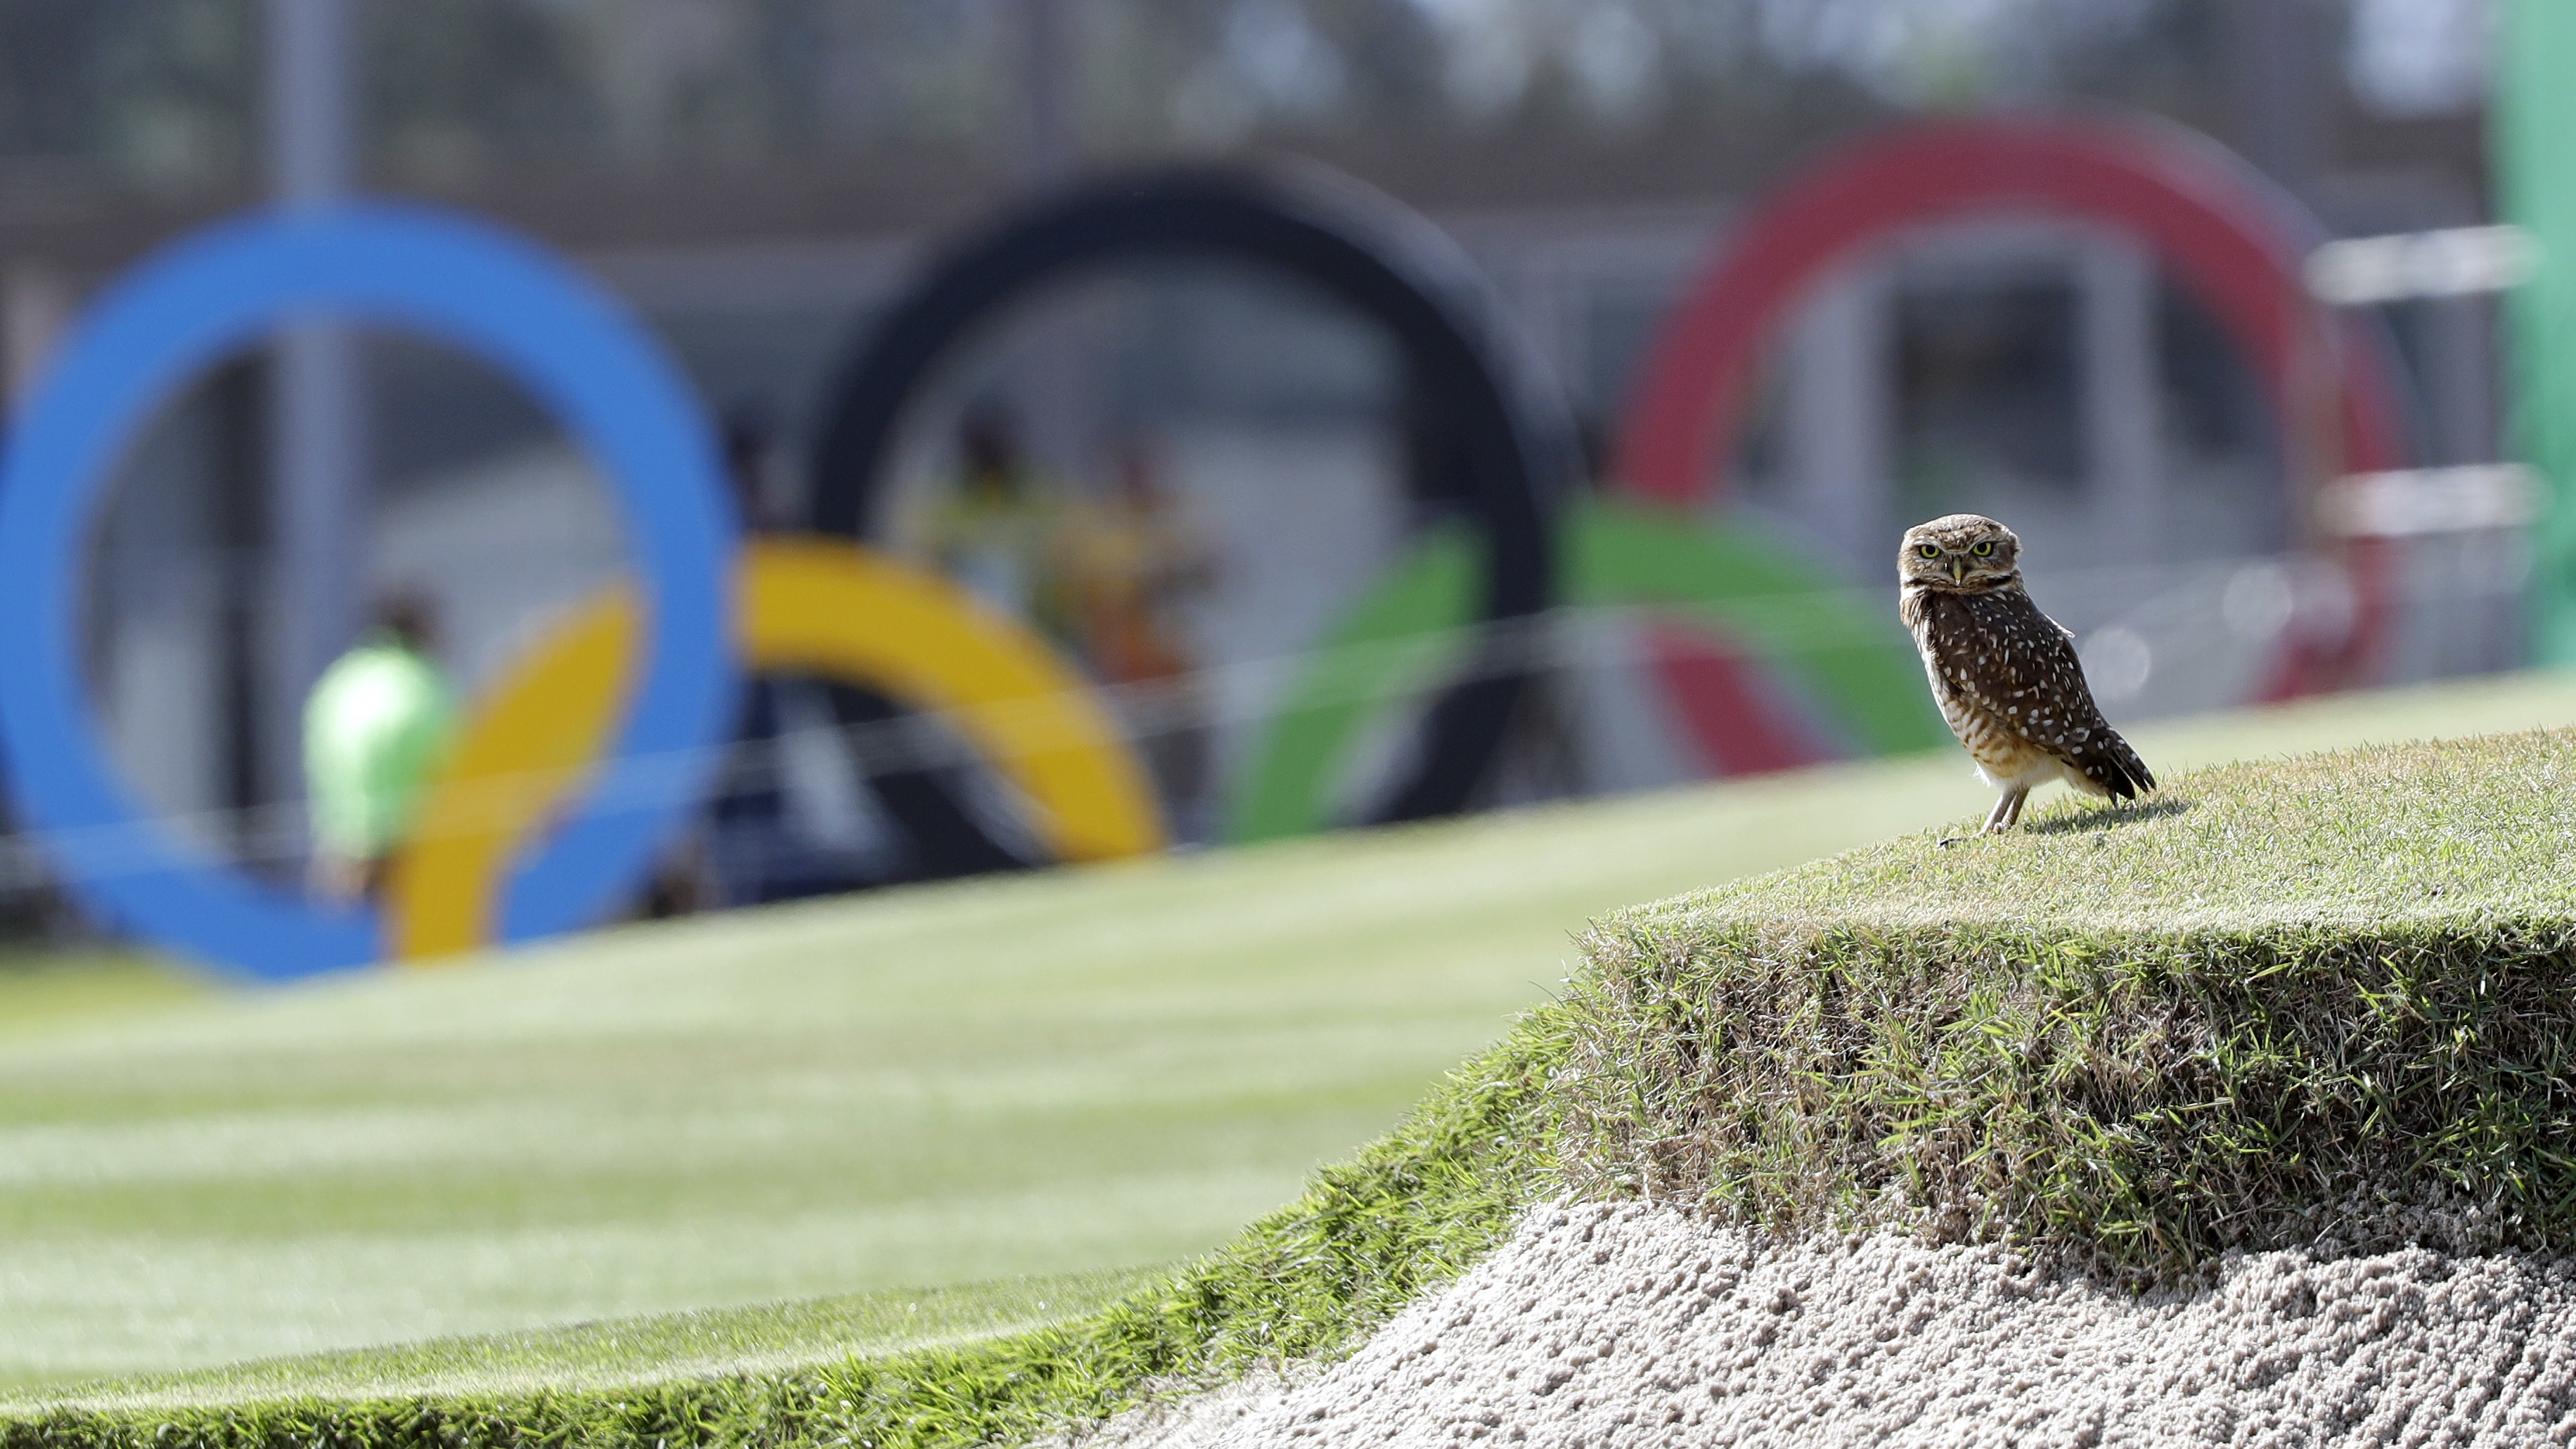 A burrowing owl rests on the ninth hole of the Olympic golf course near is nest in a san bunker during a practice round for the 2016 Summer Olympics in Rio de Janeiro, Brazil, Friday, Aug. 5, 2016. (AP Photo/Eric Gay)